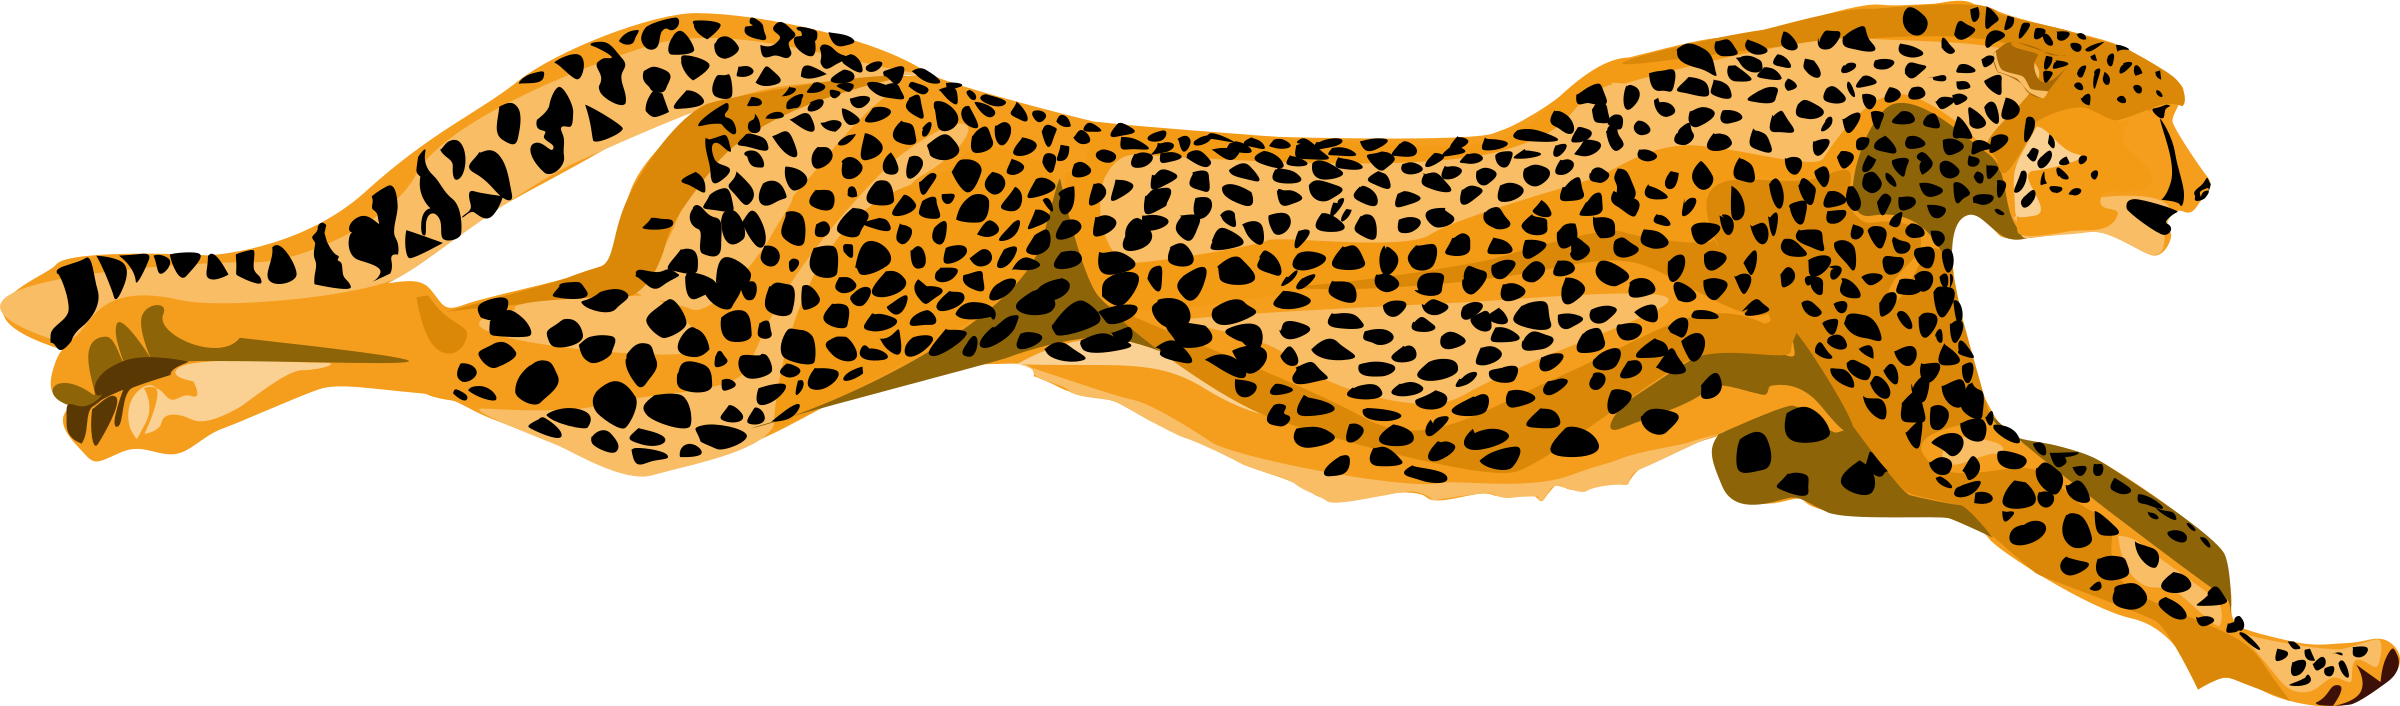 collection of images. Clipart face leopard